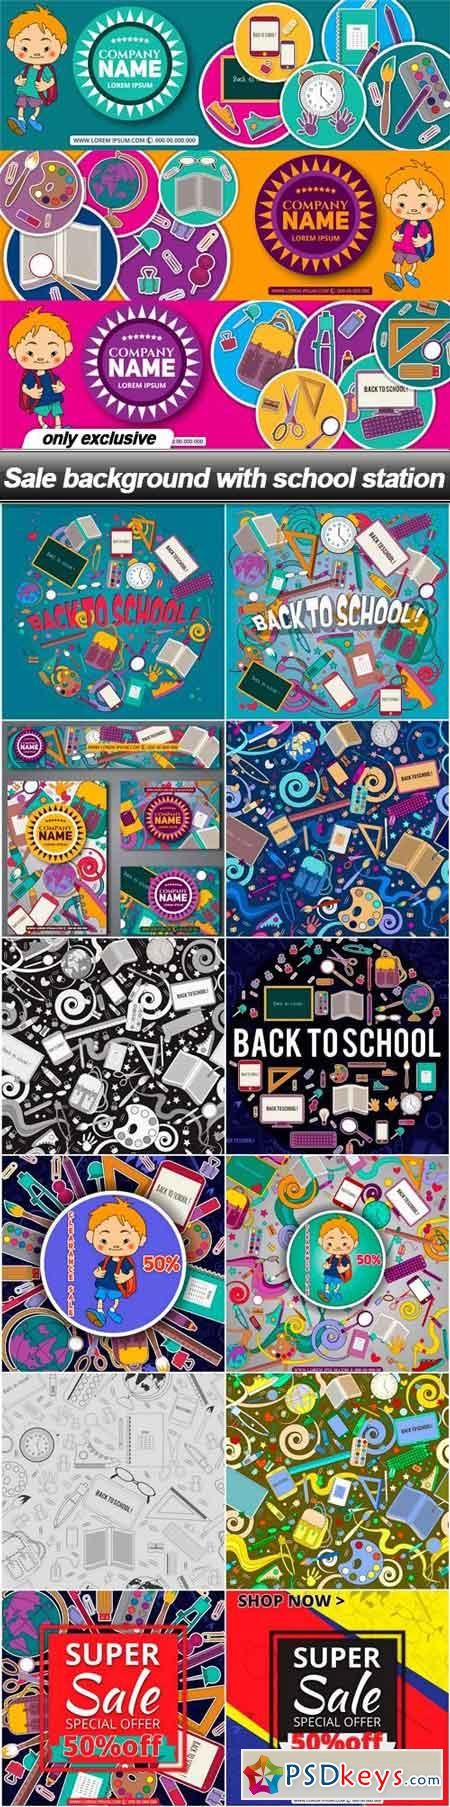 Sale background with school station - 13 EPS